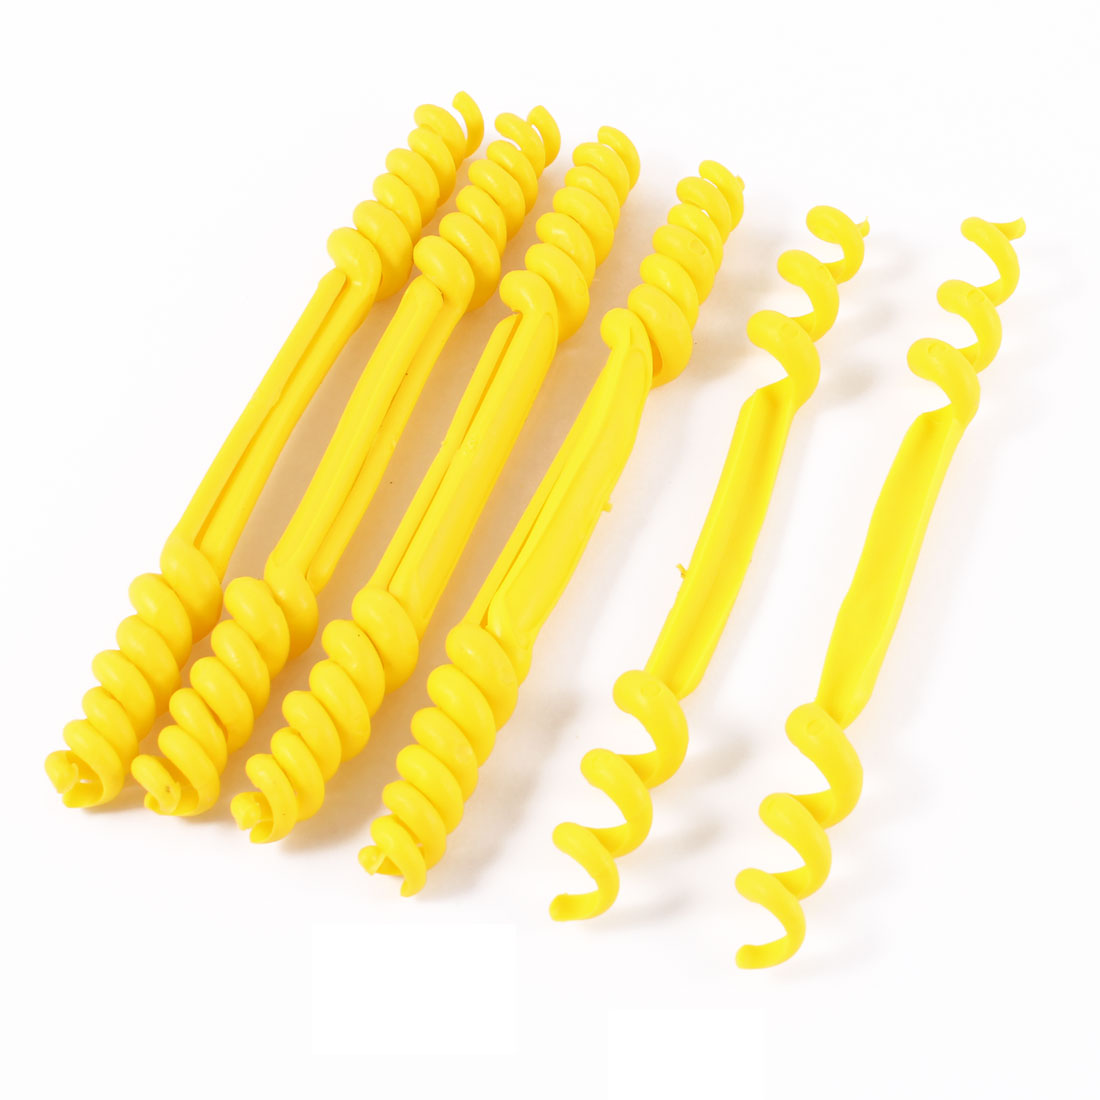 10 Pcs Yellow Plastic Flexible Spiral Cable Wire Identification Marker